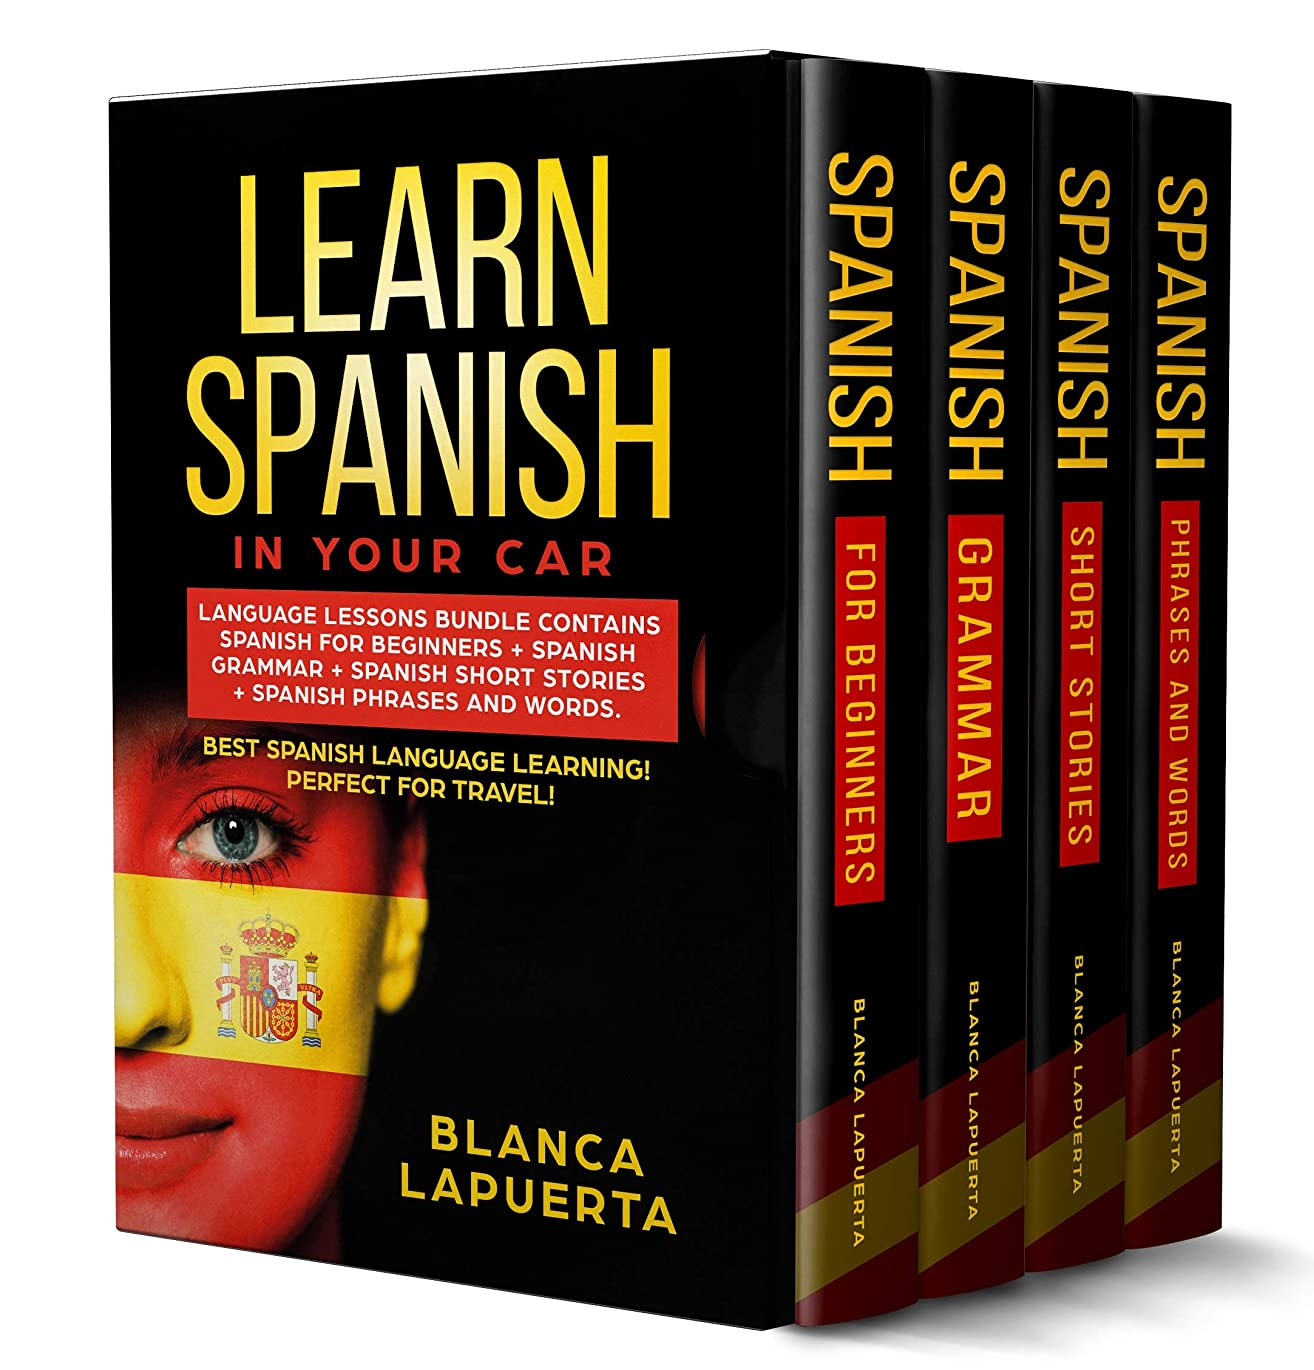 奇跡回復セミナーLEARN SPANISH IN YOUR CAR: Language Lessons Bundle Contains Spanish For Beginners + Spanish Grammar + Spanish Short Stories +Spanish Phrases  And Words. ... Spanish Language Learning! (English Edition)